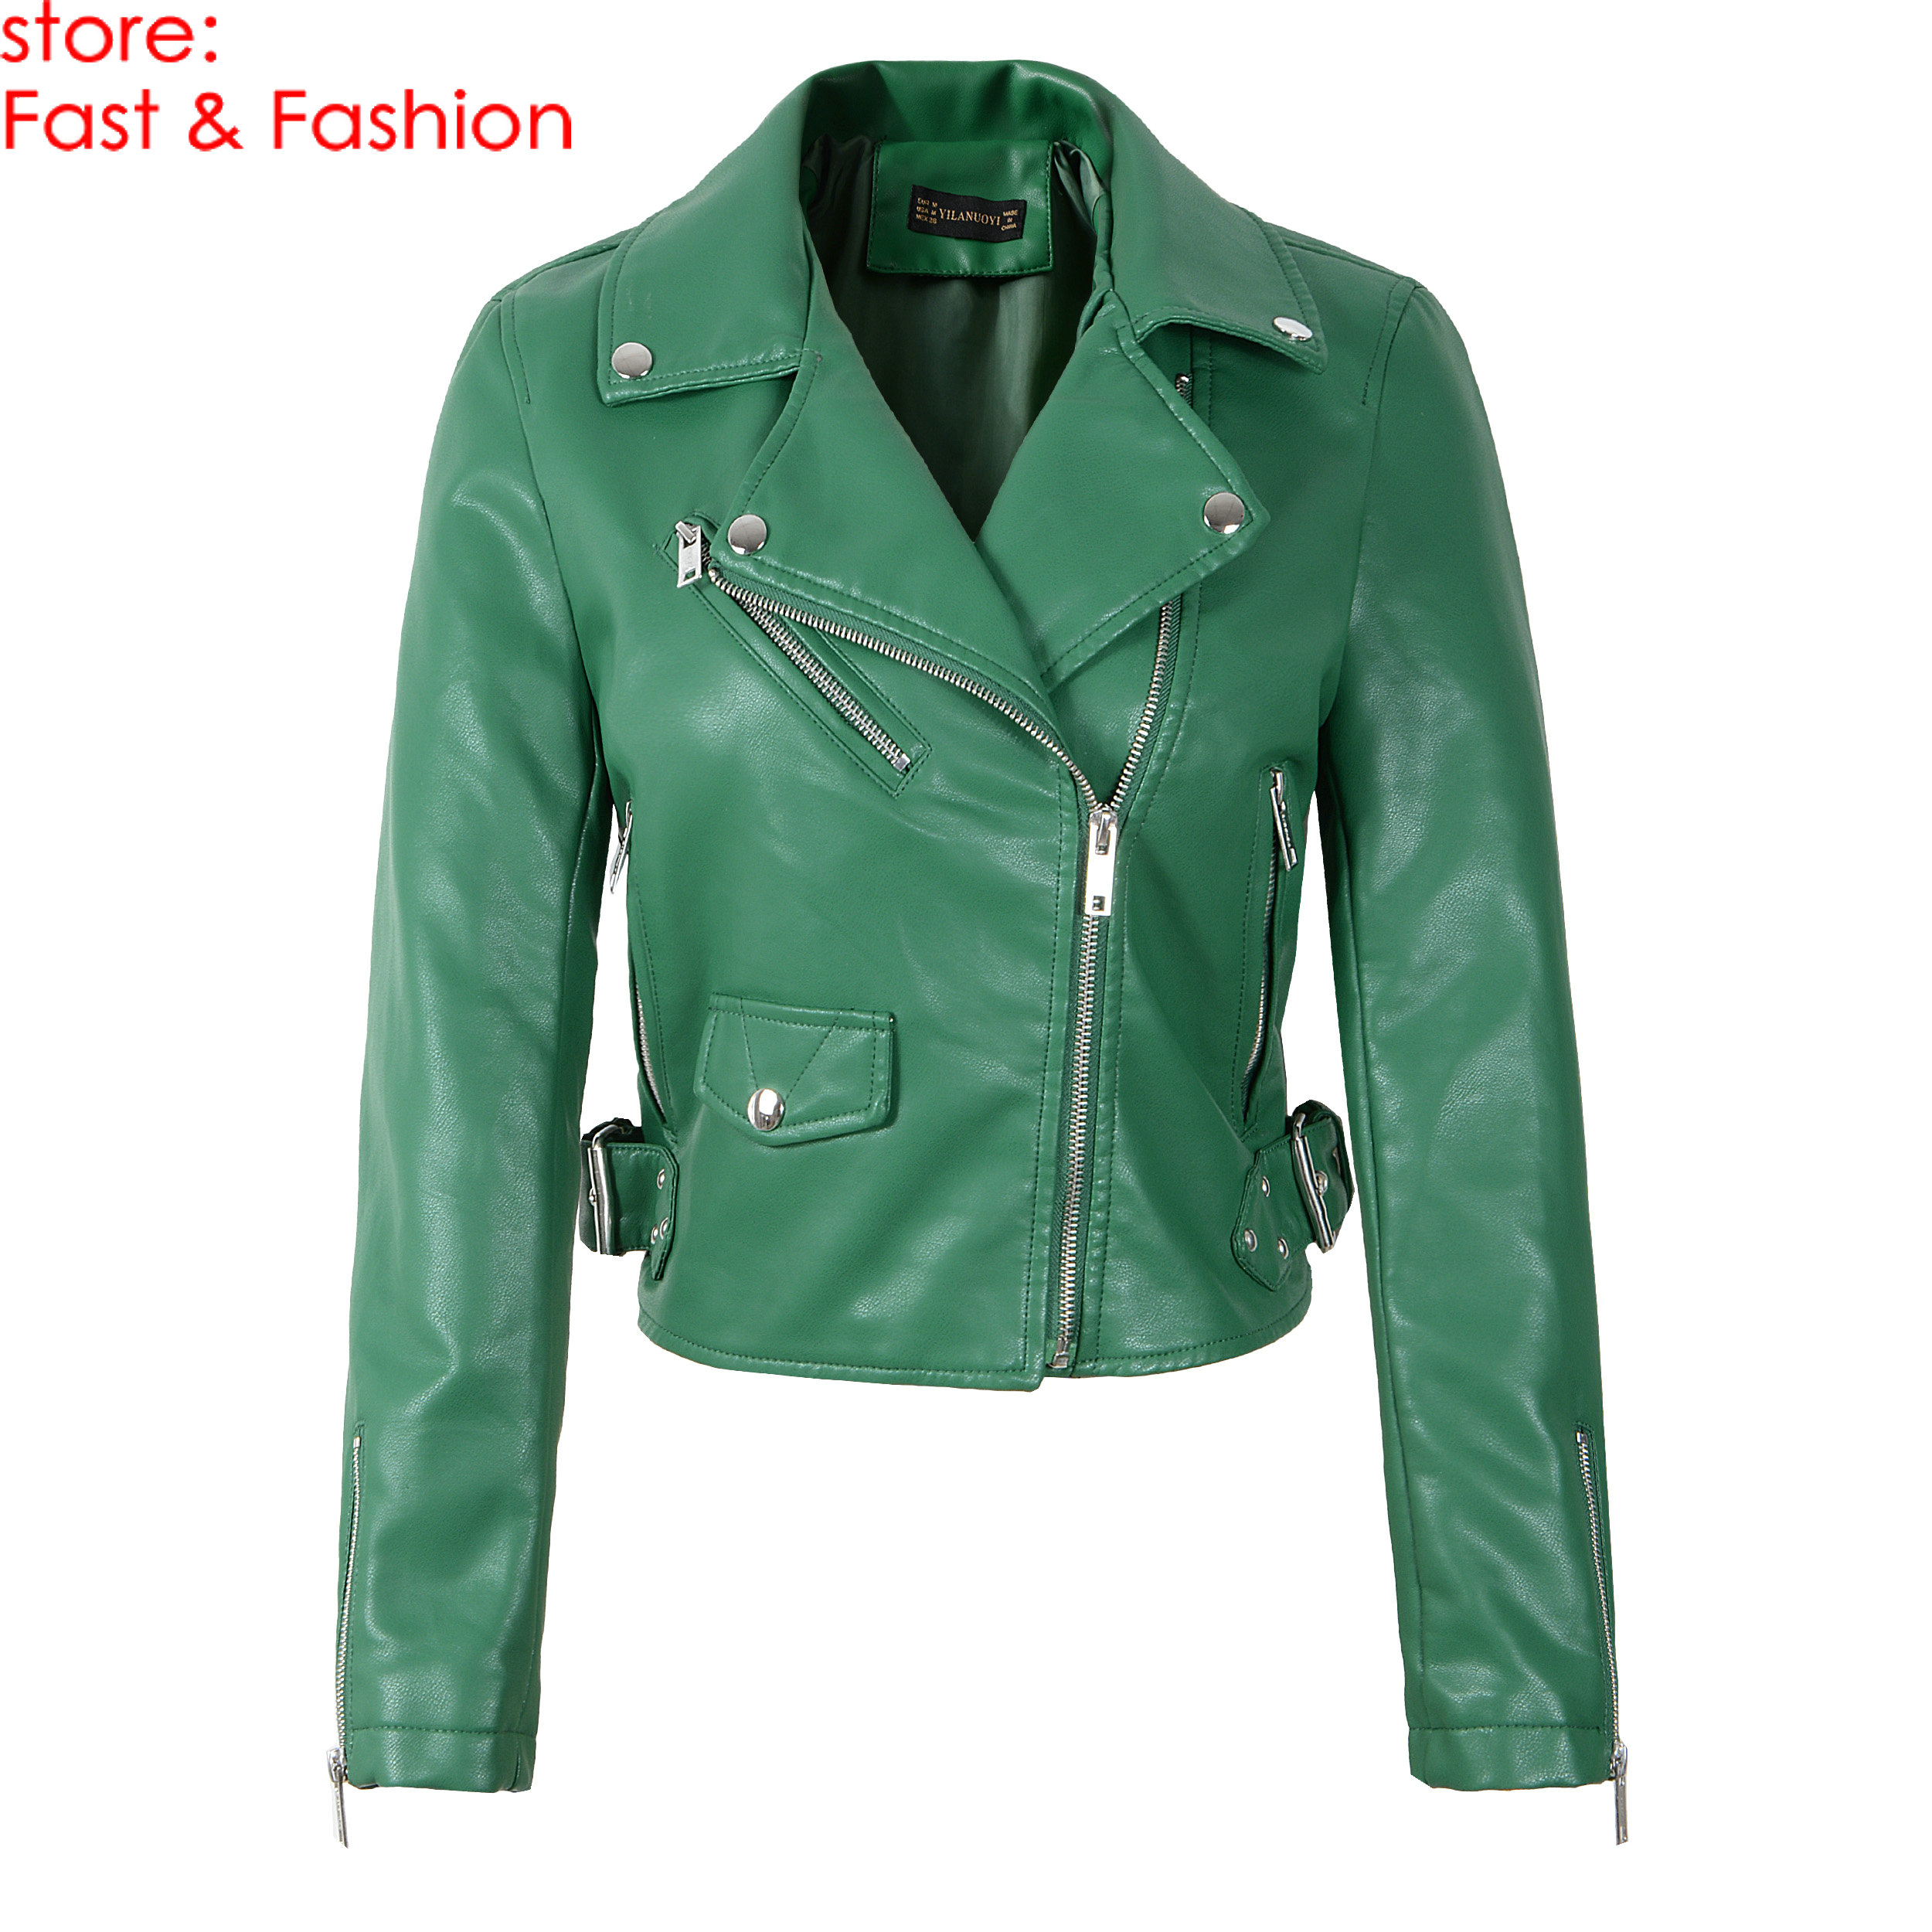 2019 New Fashion Women Autumn Rivet Faux Soft   Leather   Jackets and Coats Lady PU Long Sleeve Zippers Motorcycle Biker Outerwear